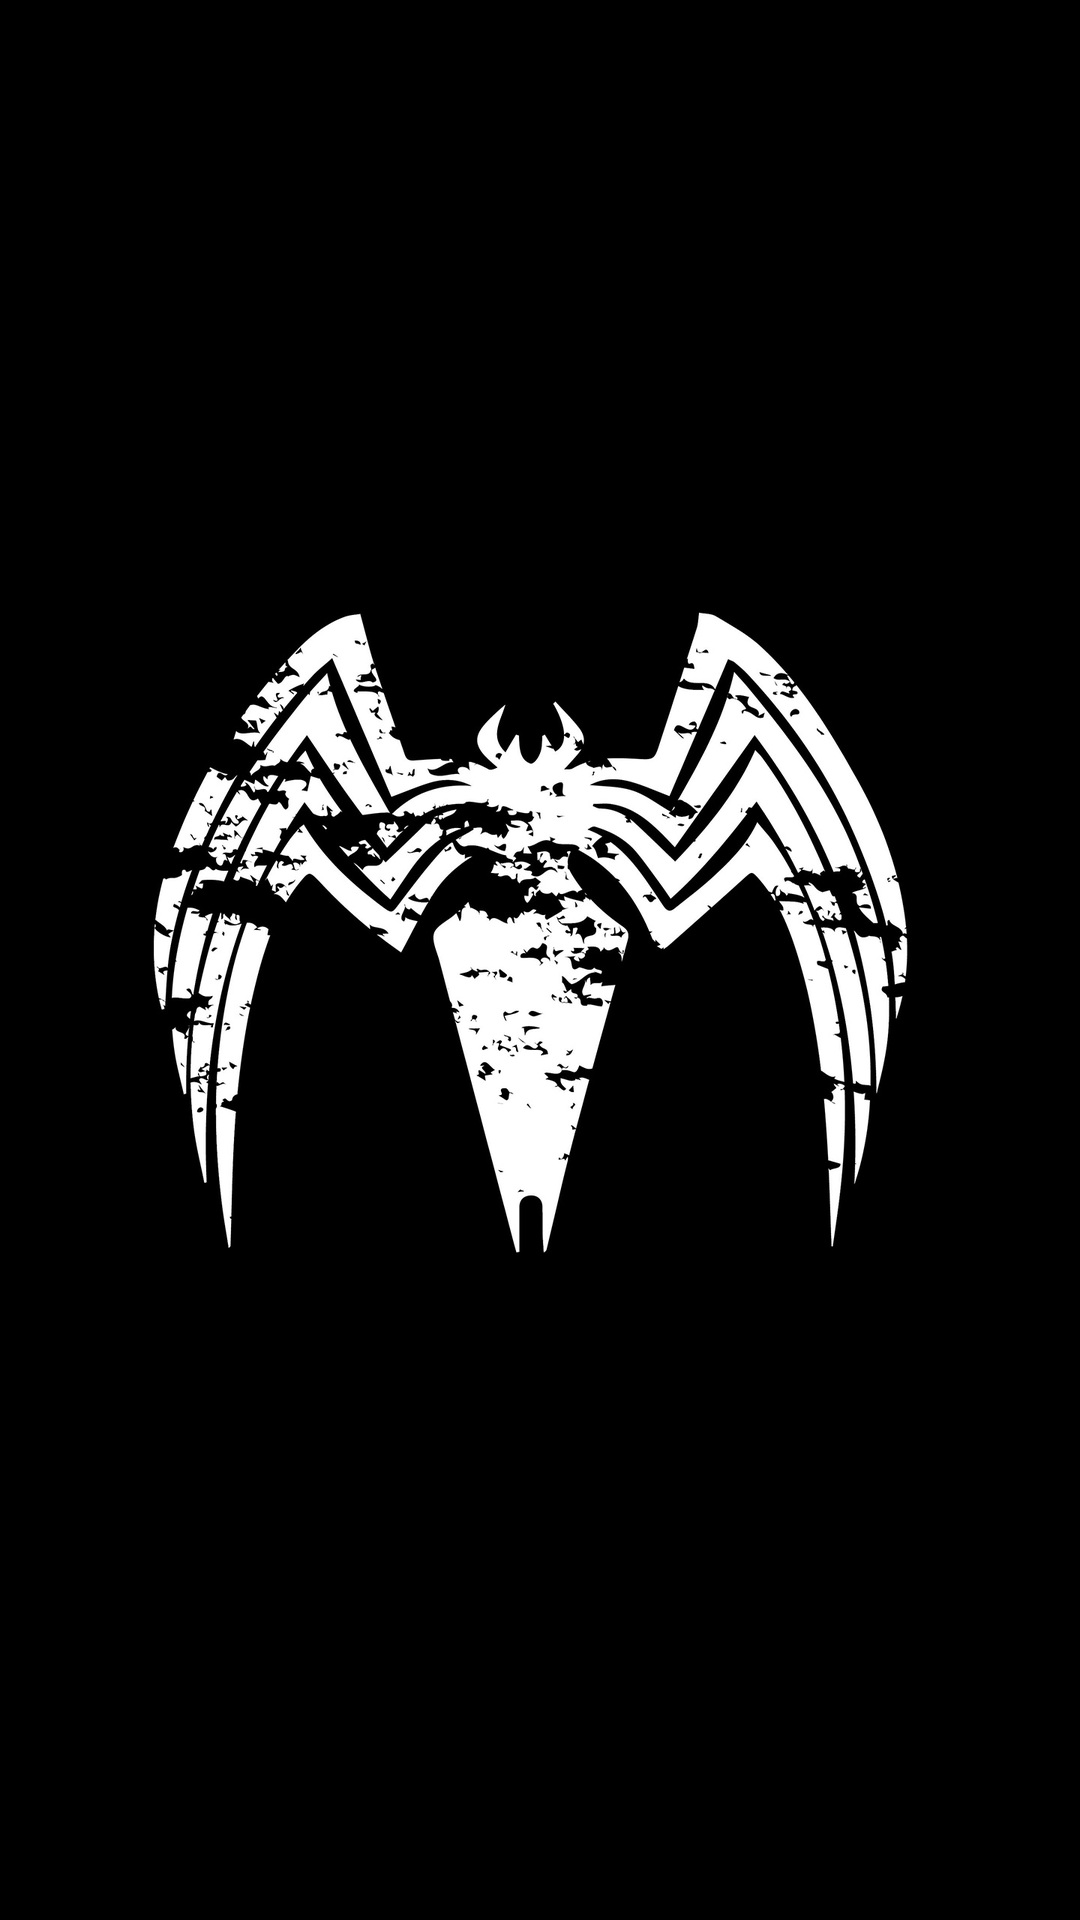 Download Venom Logo For Iphone Or Android 1080x1920 Pixels